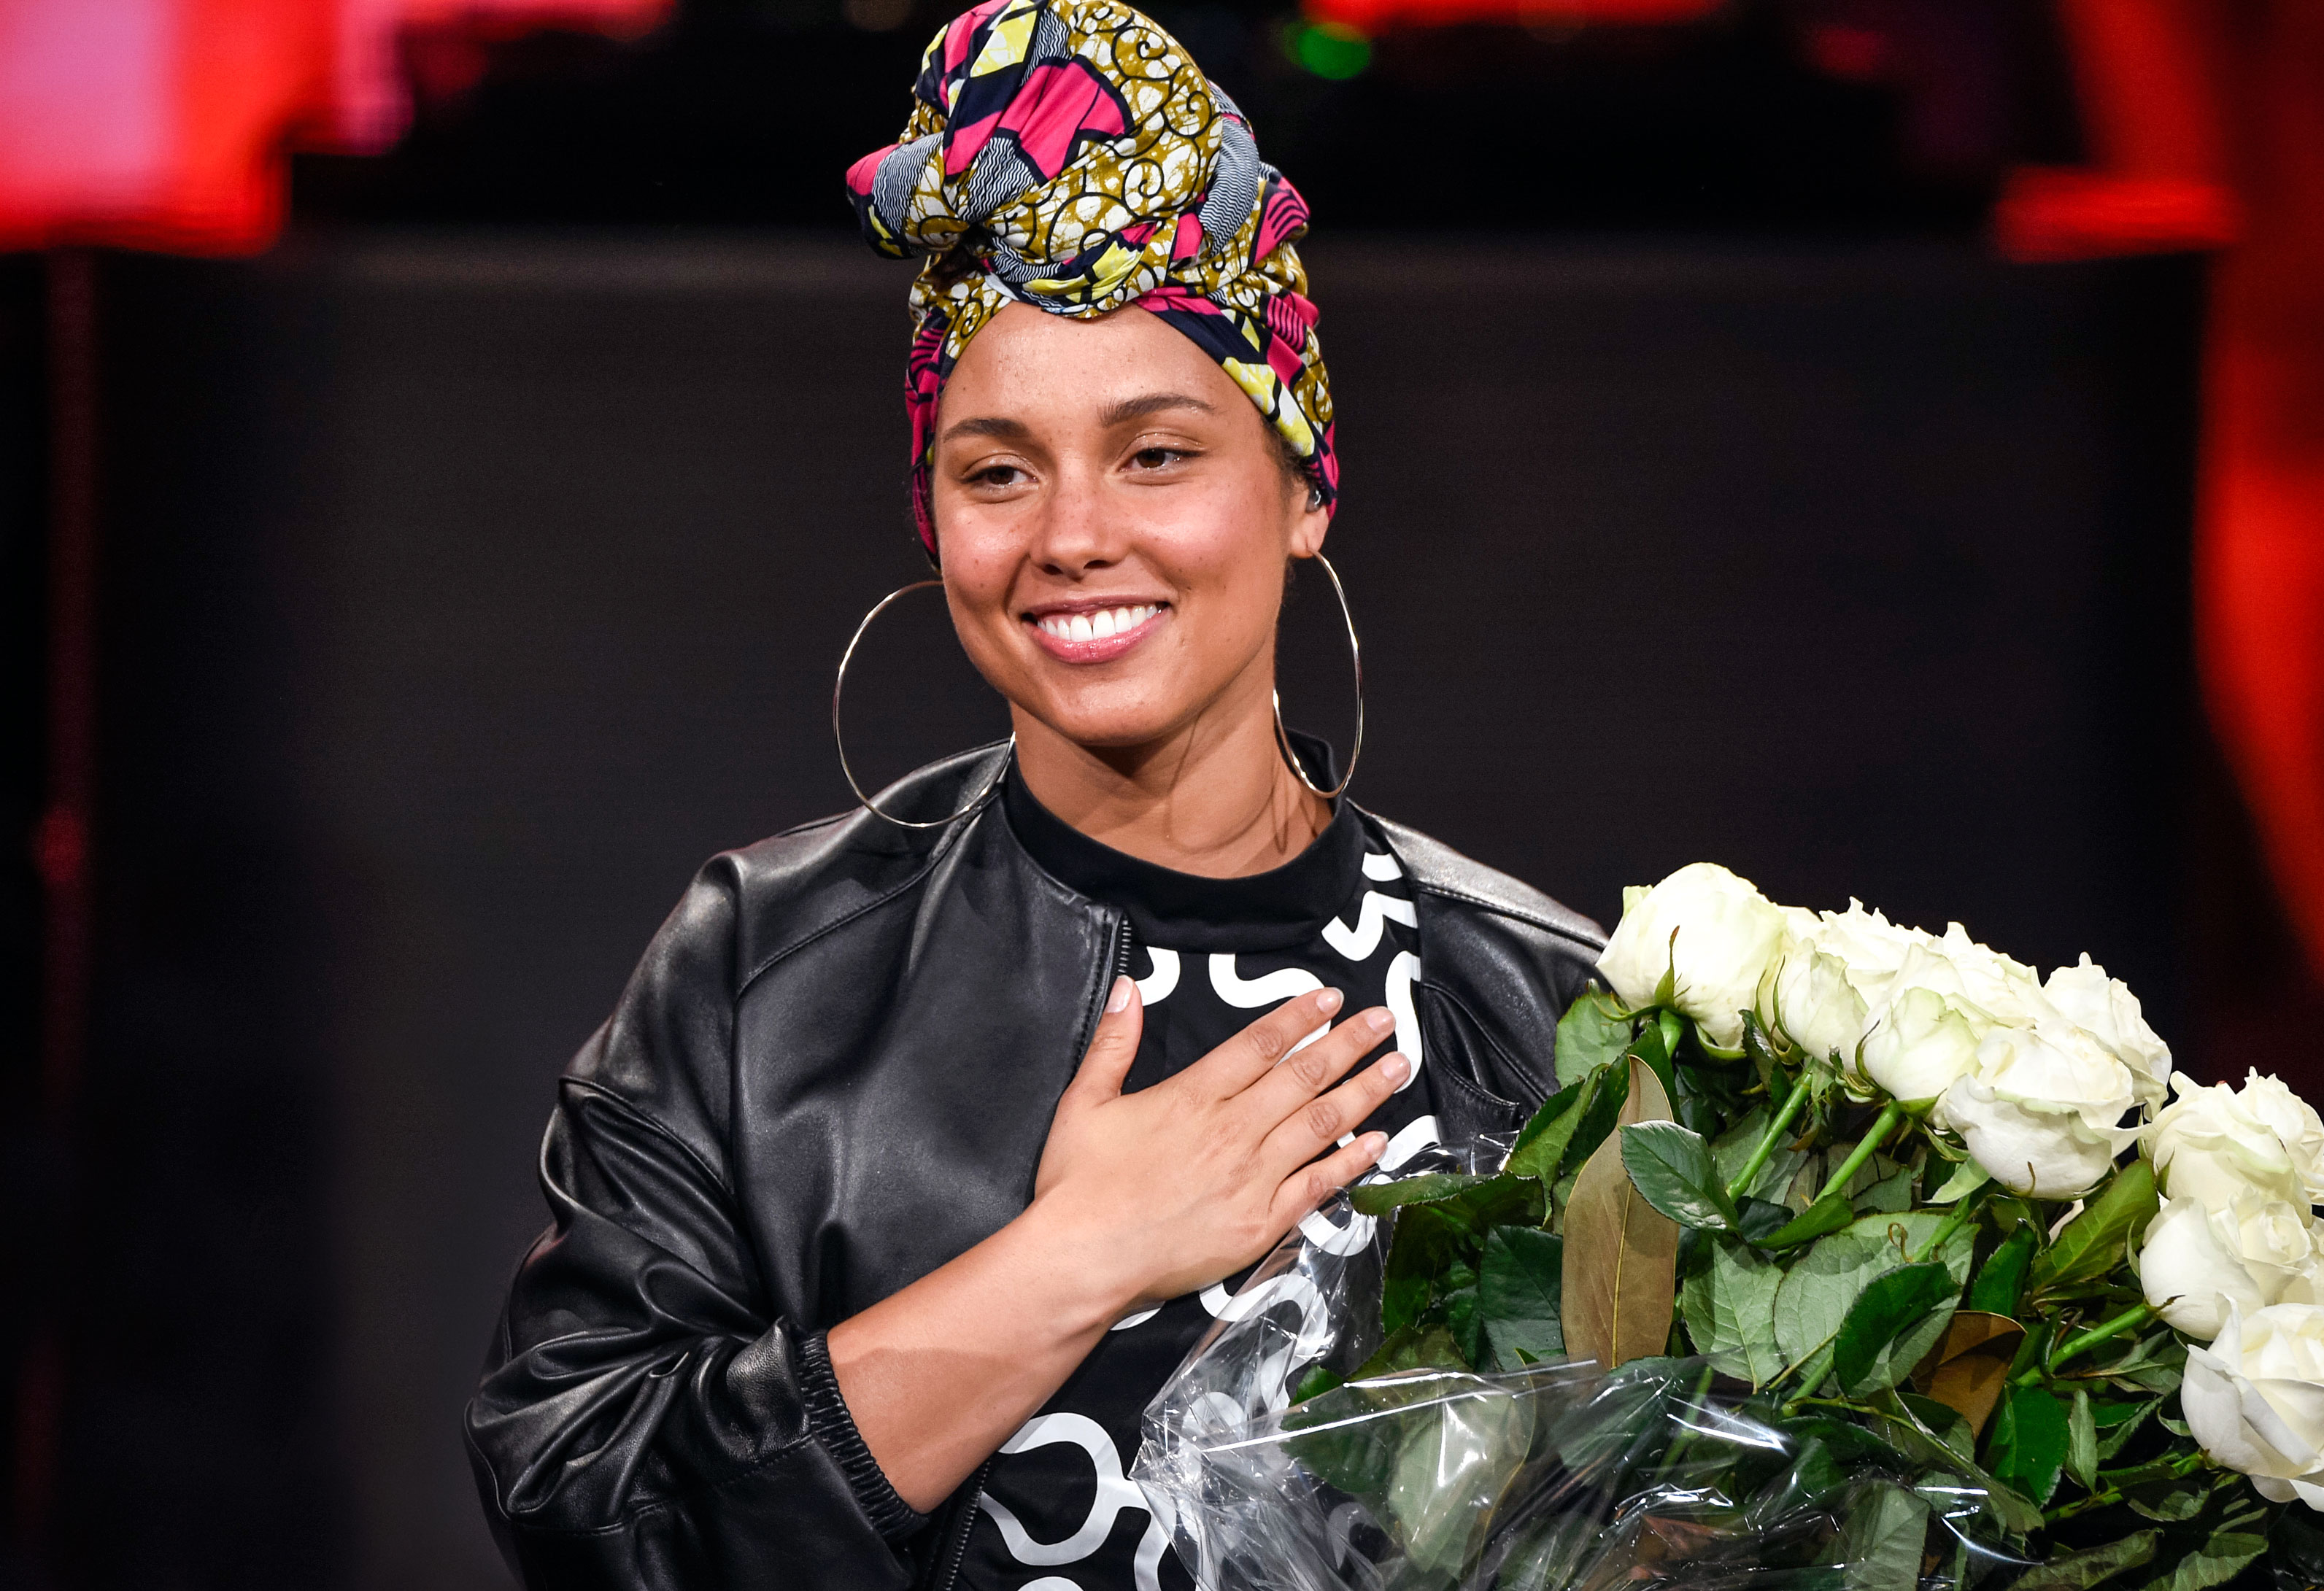 ICloud Alicia Keys naked (94 photos), Topless, Paparazzi, Instagram, in bikini 2015